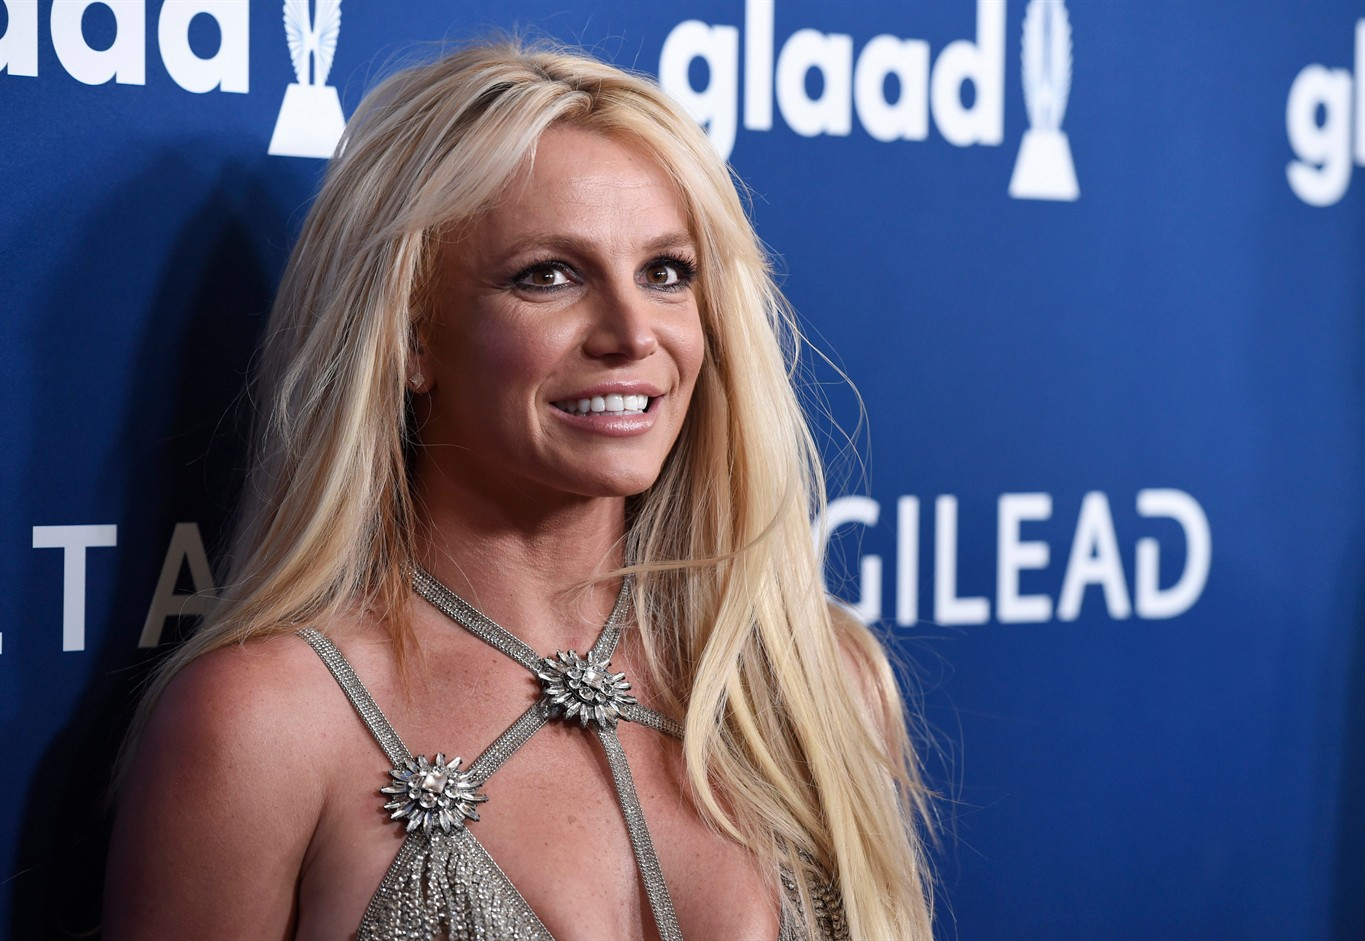 Britney Spears welcomes new niece, congratulates sister ... Britney Spears Photos